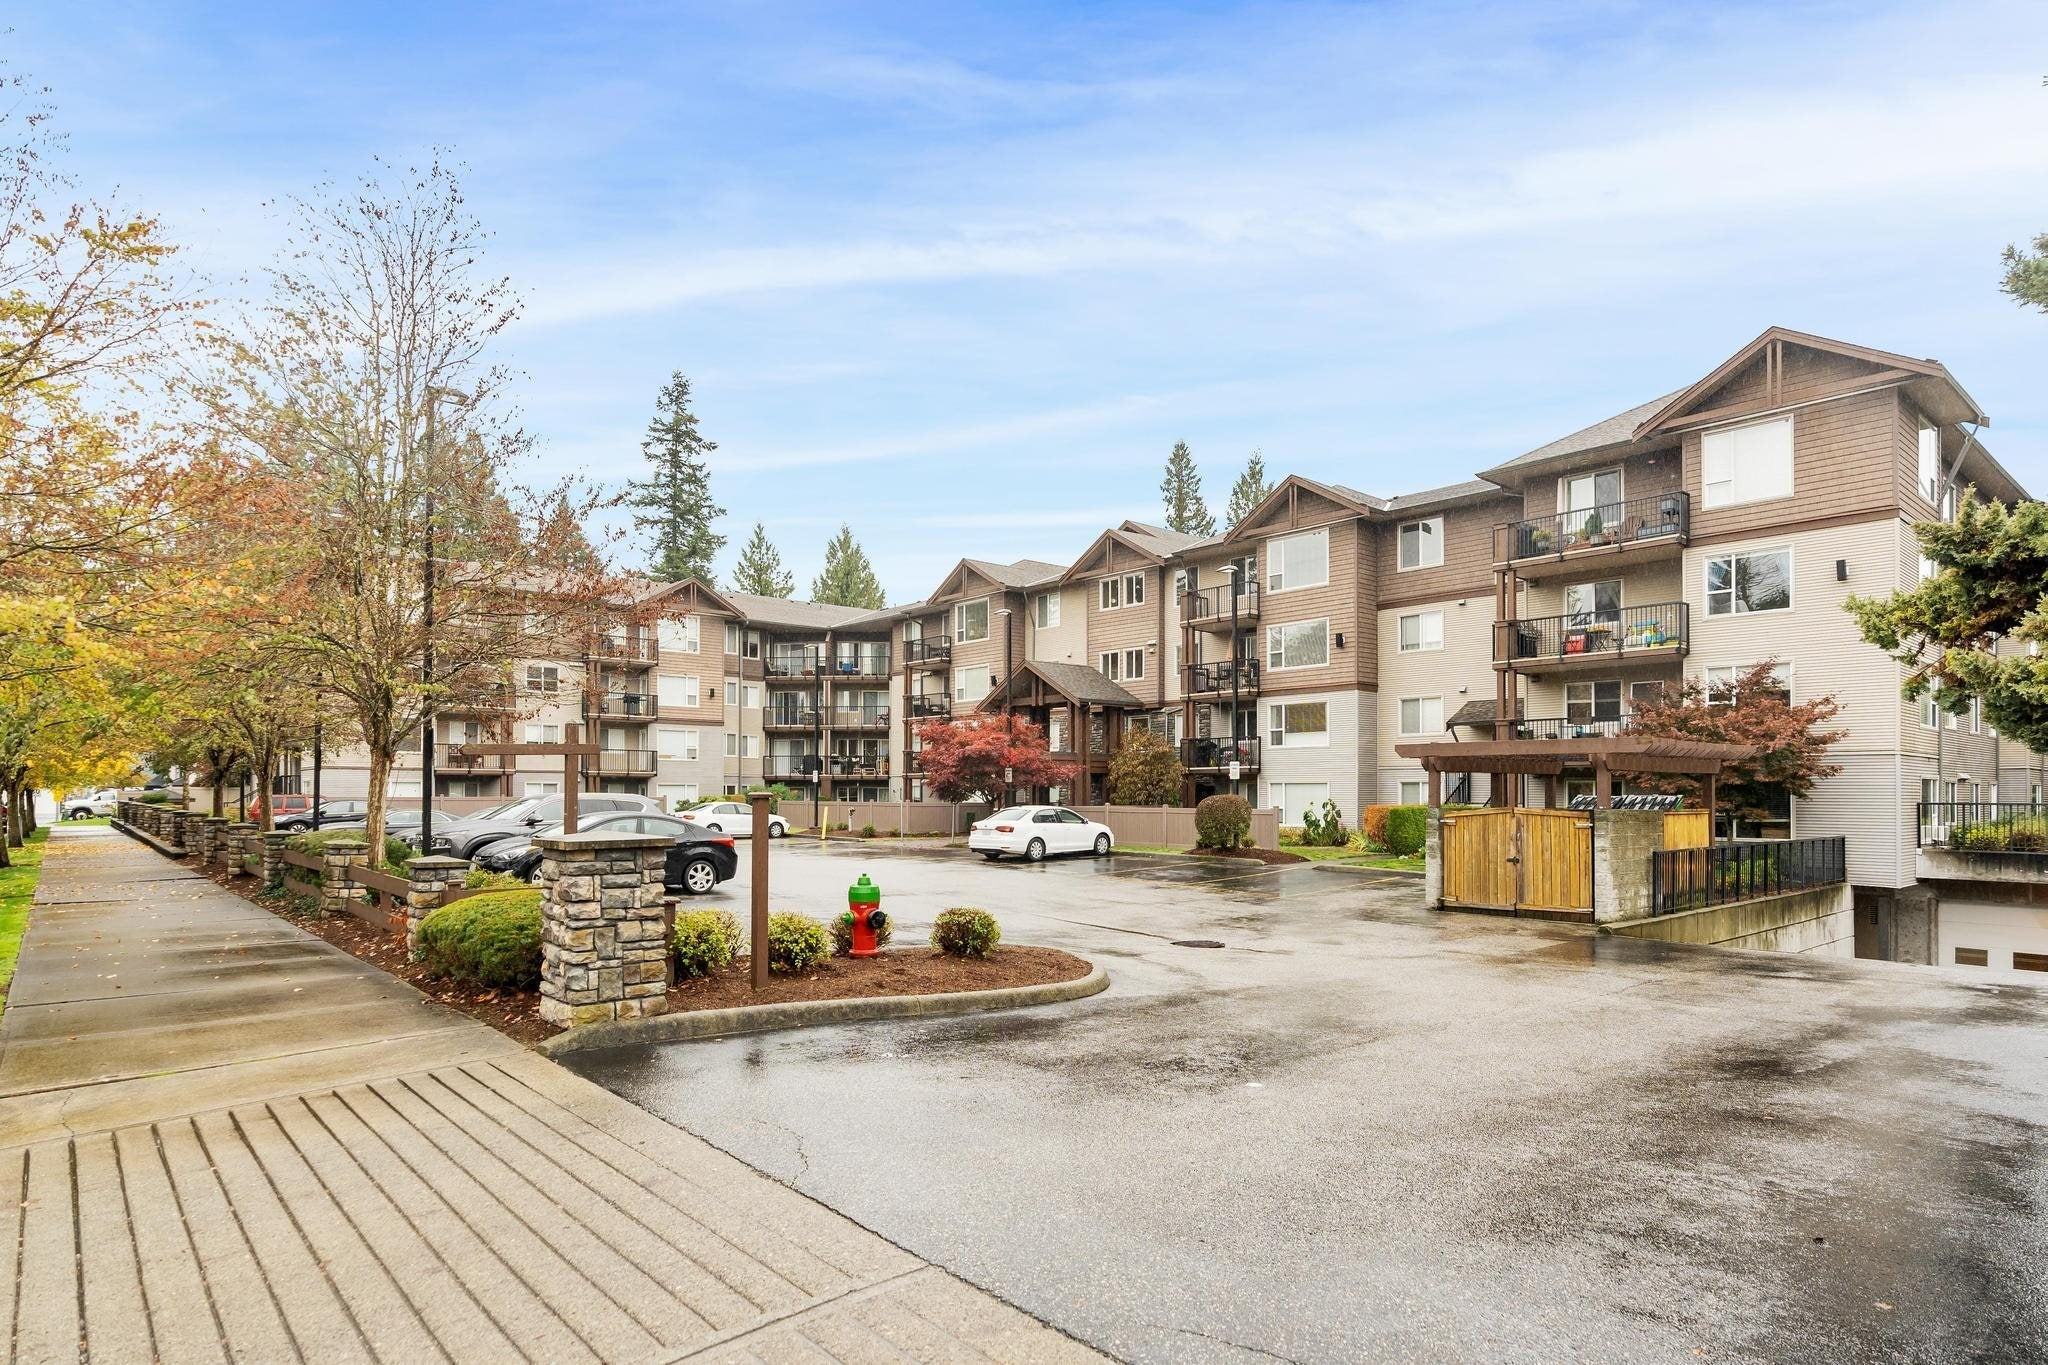 208 2581 LANGDON STREET - Abbotsford West Apartment/Condo for sale, 2 Bedrooms (R2624262) - #1